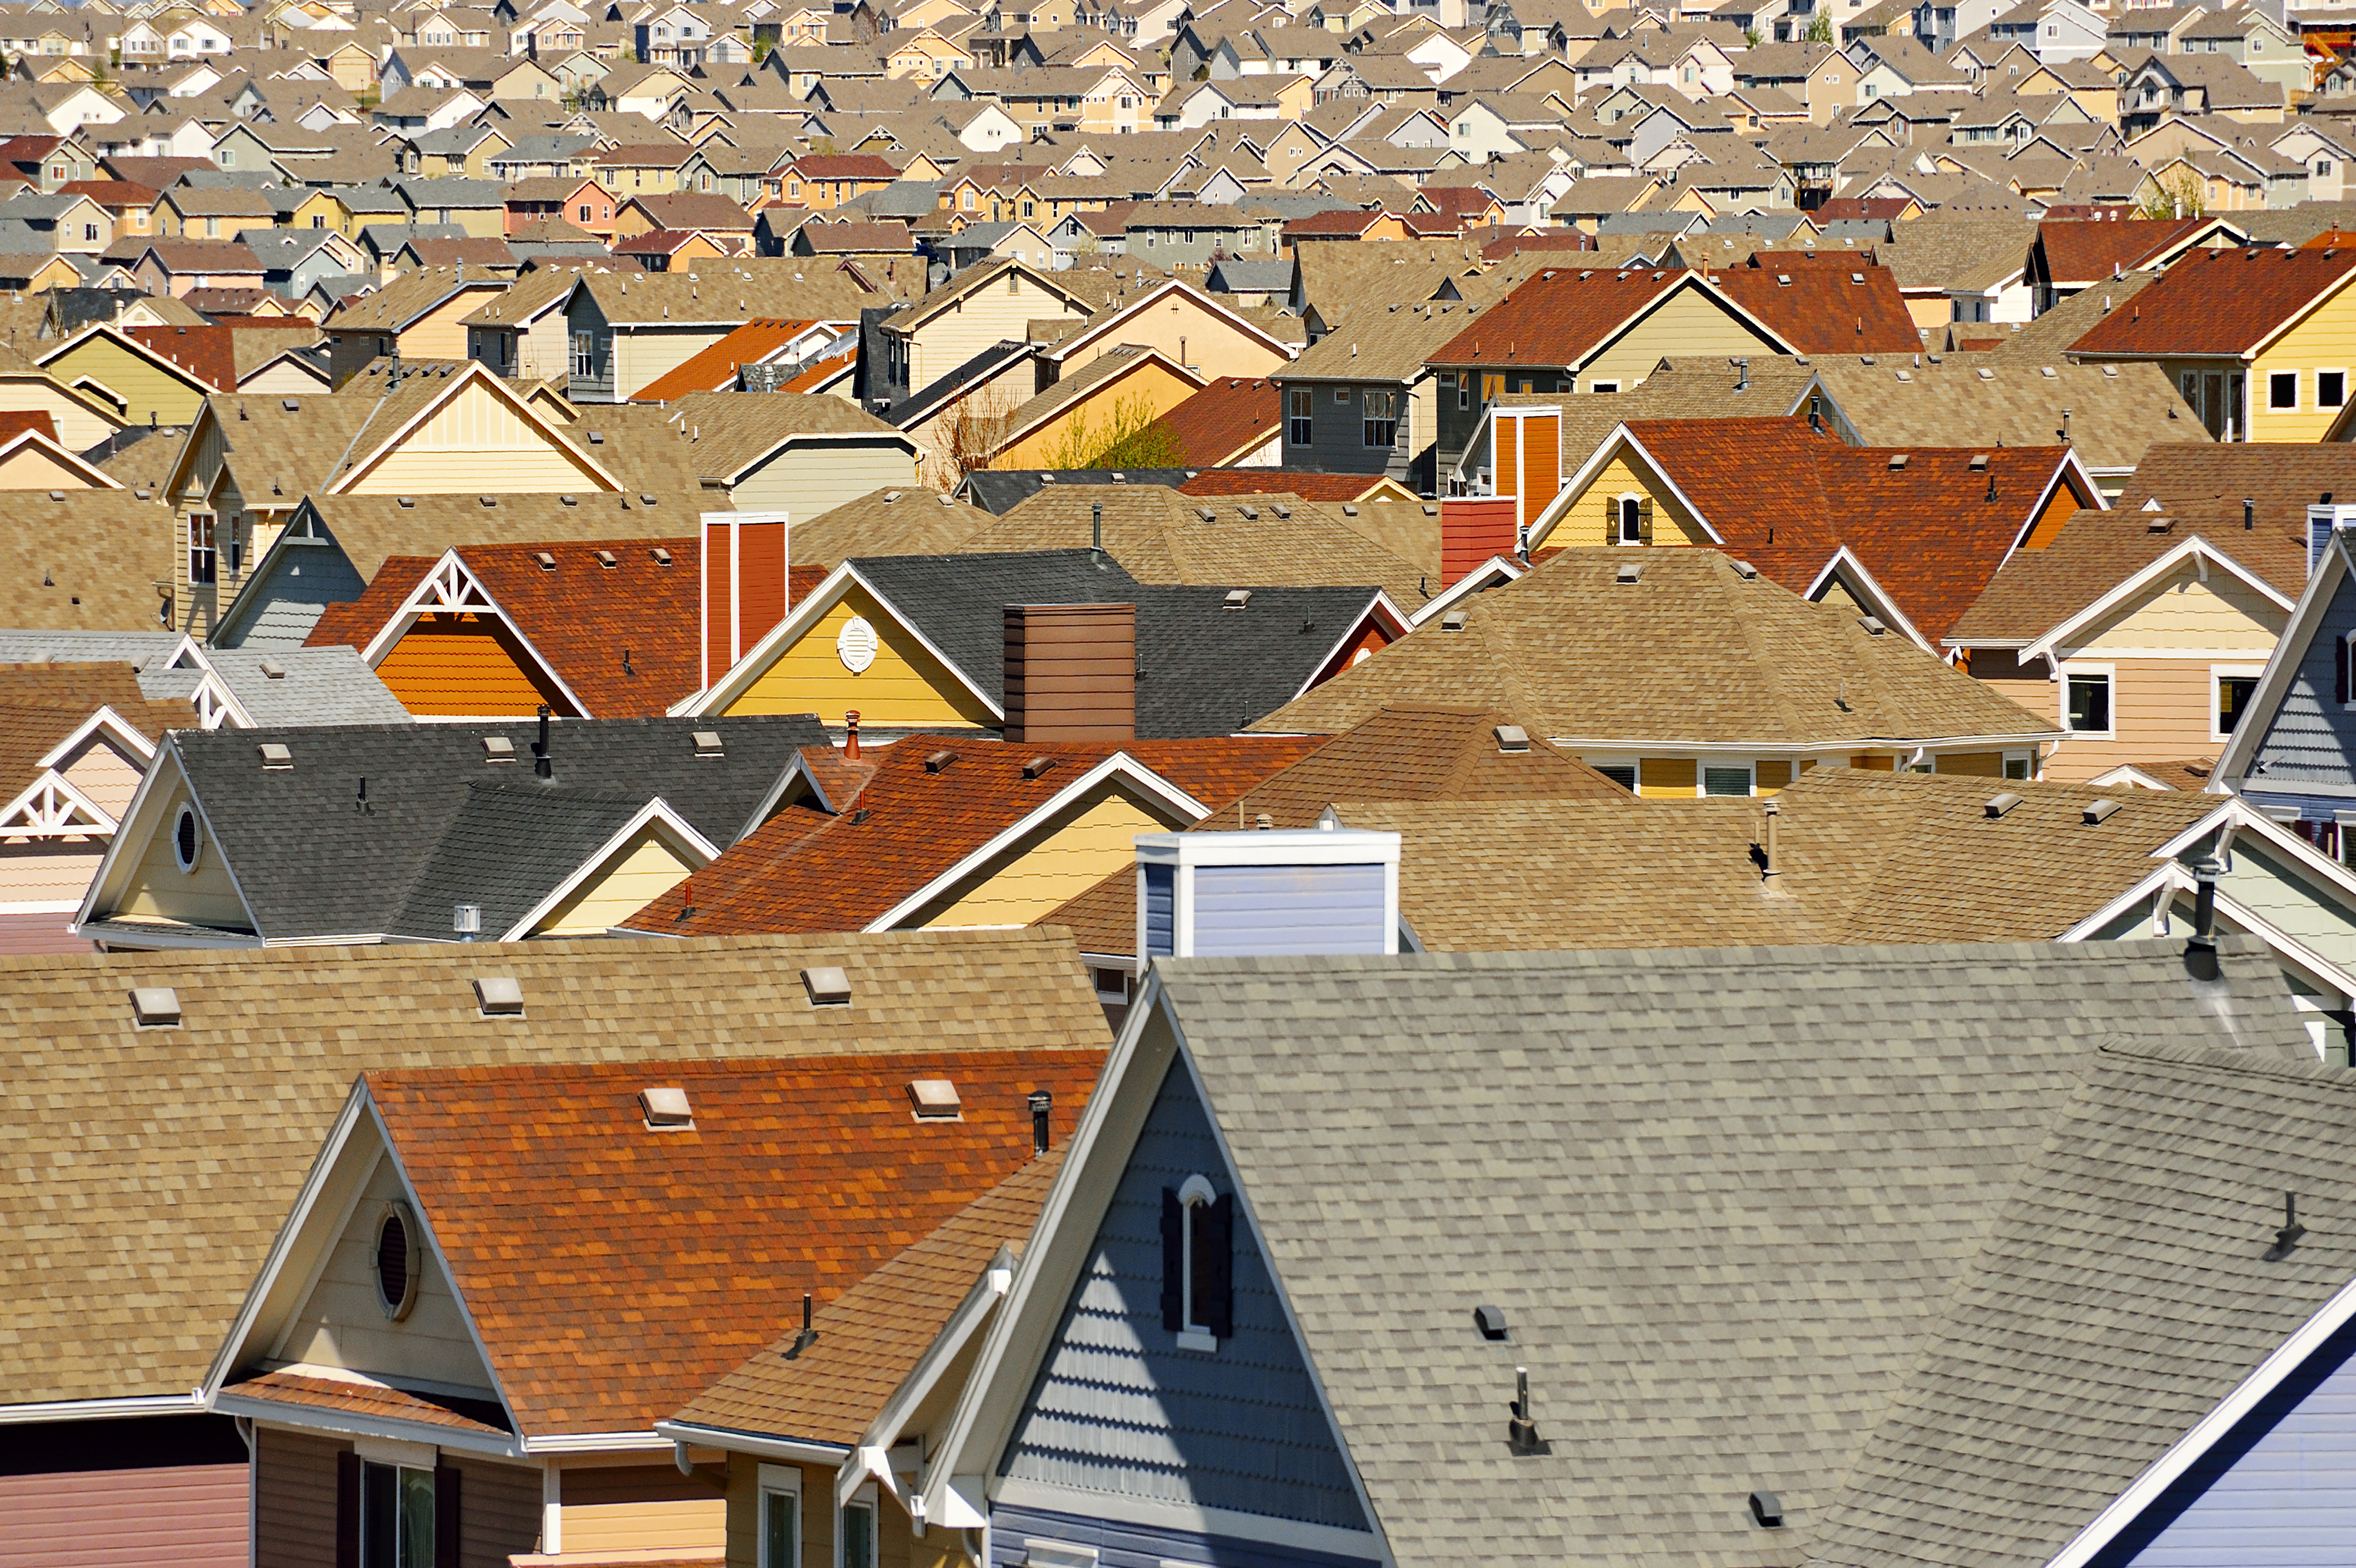 Rooftops in suburban development  in Colorado Springs, Colorado.